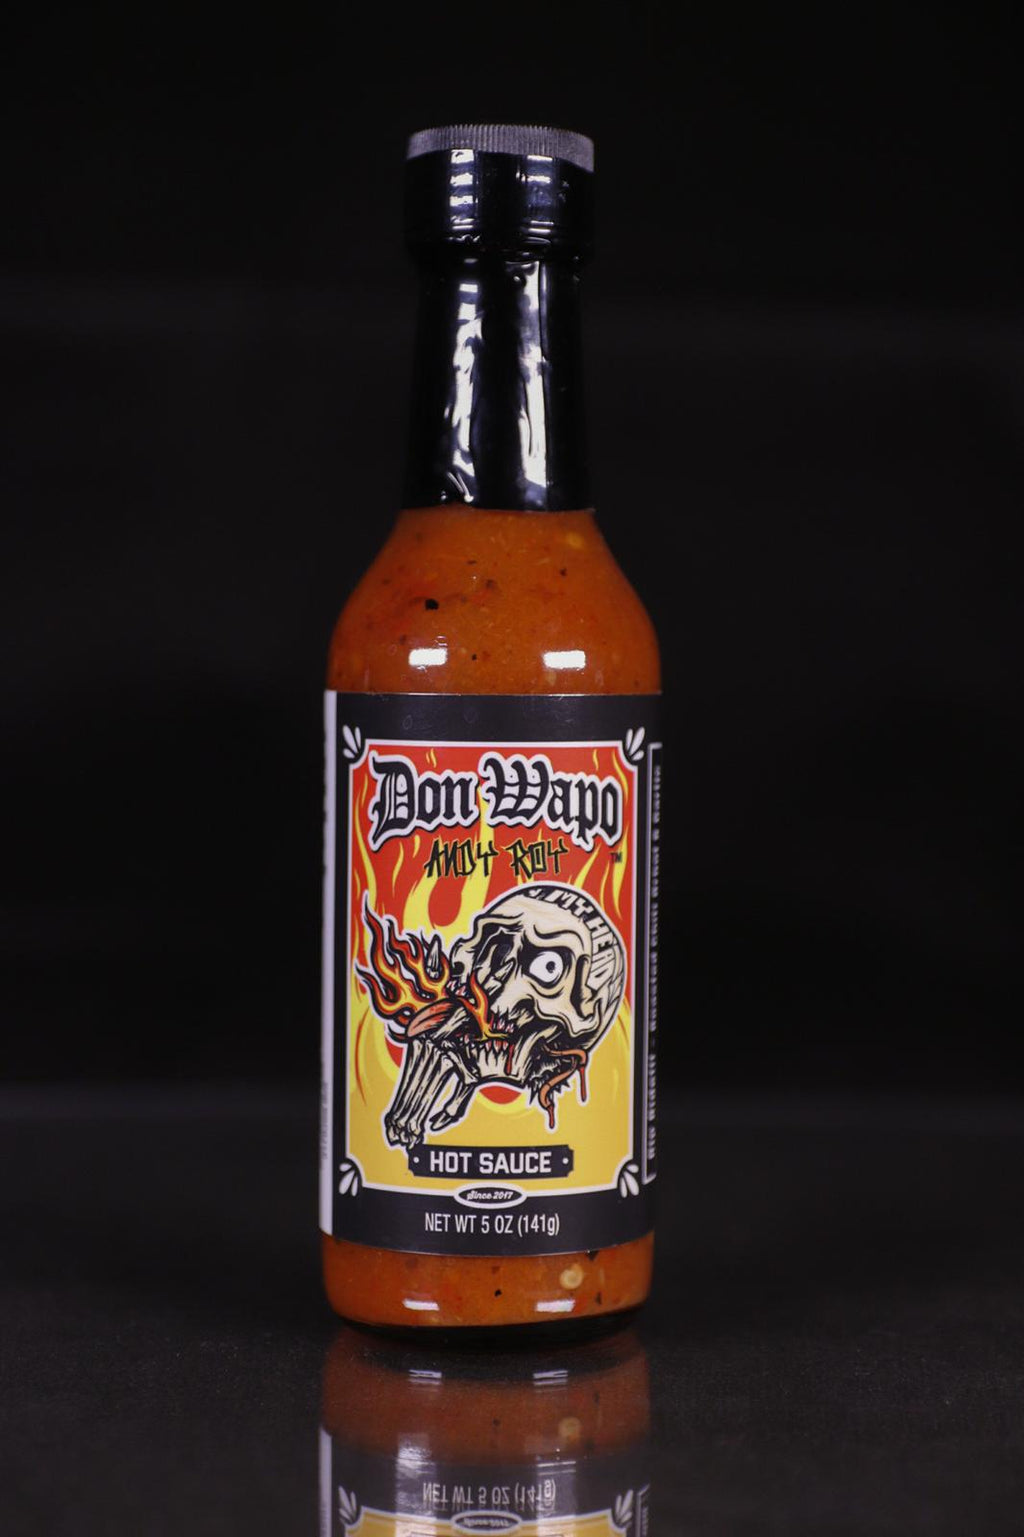 Andy Roy Limited Edition RE-LABEL Don Wapo La Primera Colab Hot Sauce